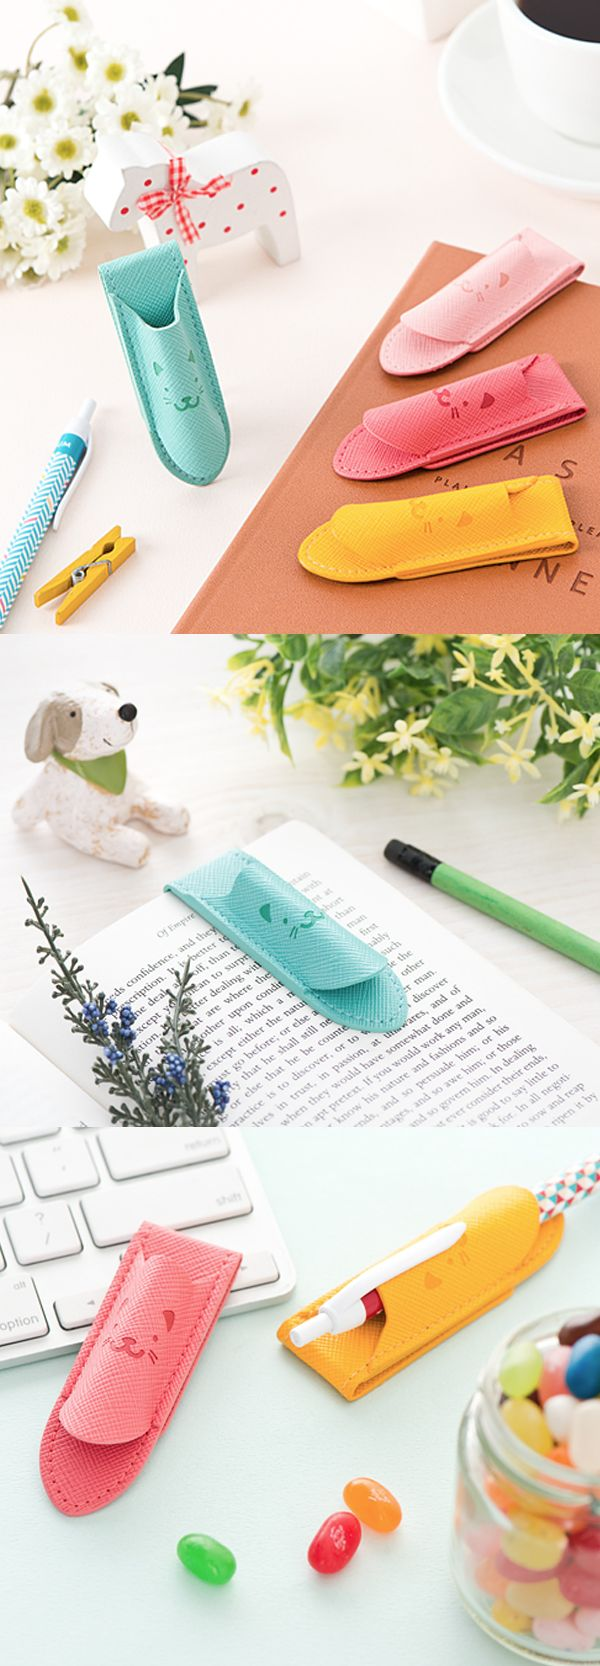 "One good look at the Cat Leather Pen Holder and you will think, ""Wow that's really colorful and pretty"". But that's not all! This is a smart pen holder that can be easily attached to any of your notebooks, planners, or others to help you carry your pen anywhere!"